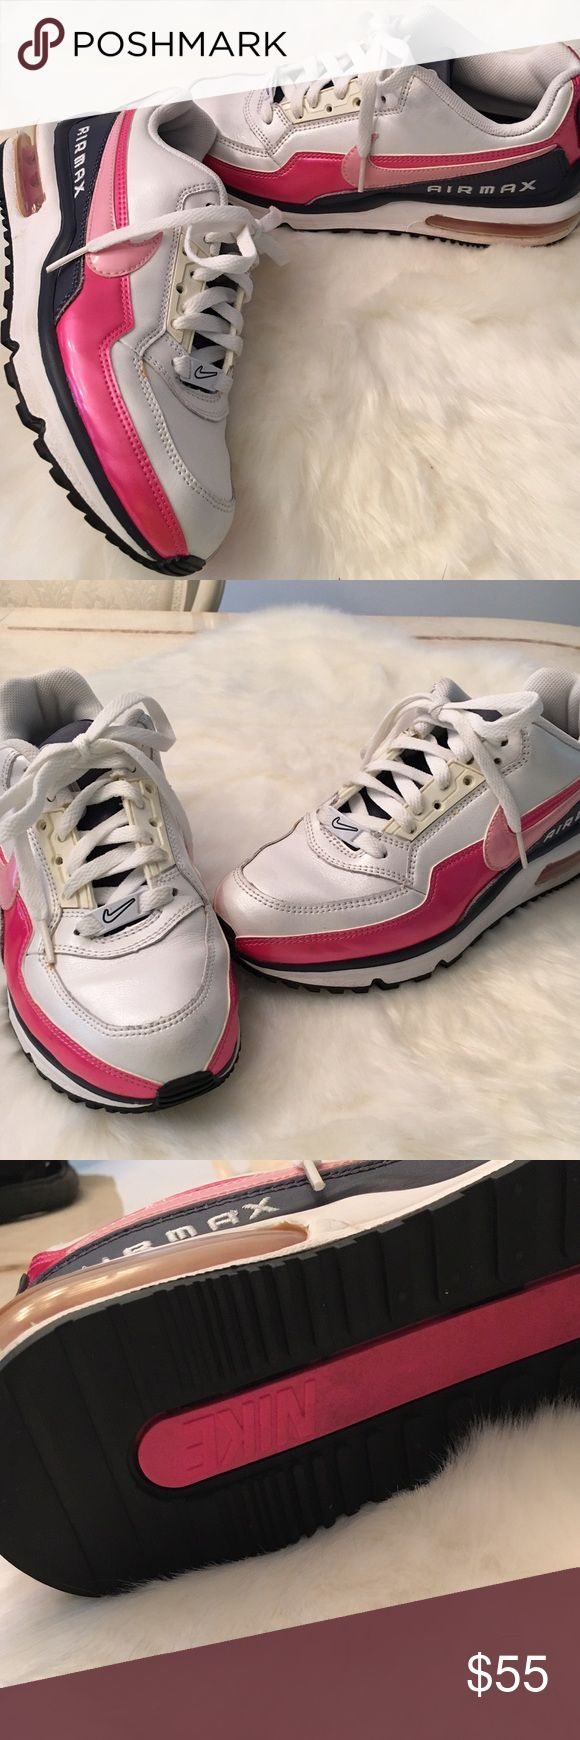 👟 PEARL WHITE Nike Air MAX Sneakers CLEAN 7.5 Amazing sneakers by Nike!!! Gently wore, has a few normal wear scuffs but besides that they are clean and has lots of life left!!! The white is pearl white, with pink and dark navy color. Grab them sold out in stores!! ❗️NO TRADES PLEASE❗️ 🛍BUNDLE FOR SAVINGS🛍 Nike Shoes Athletic Shoes